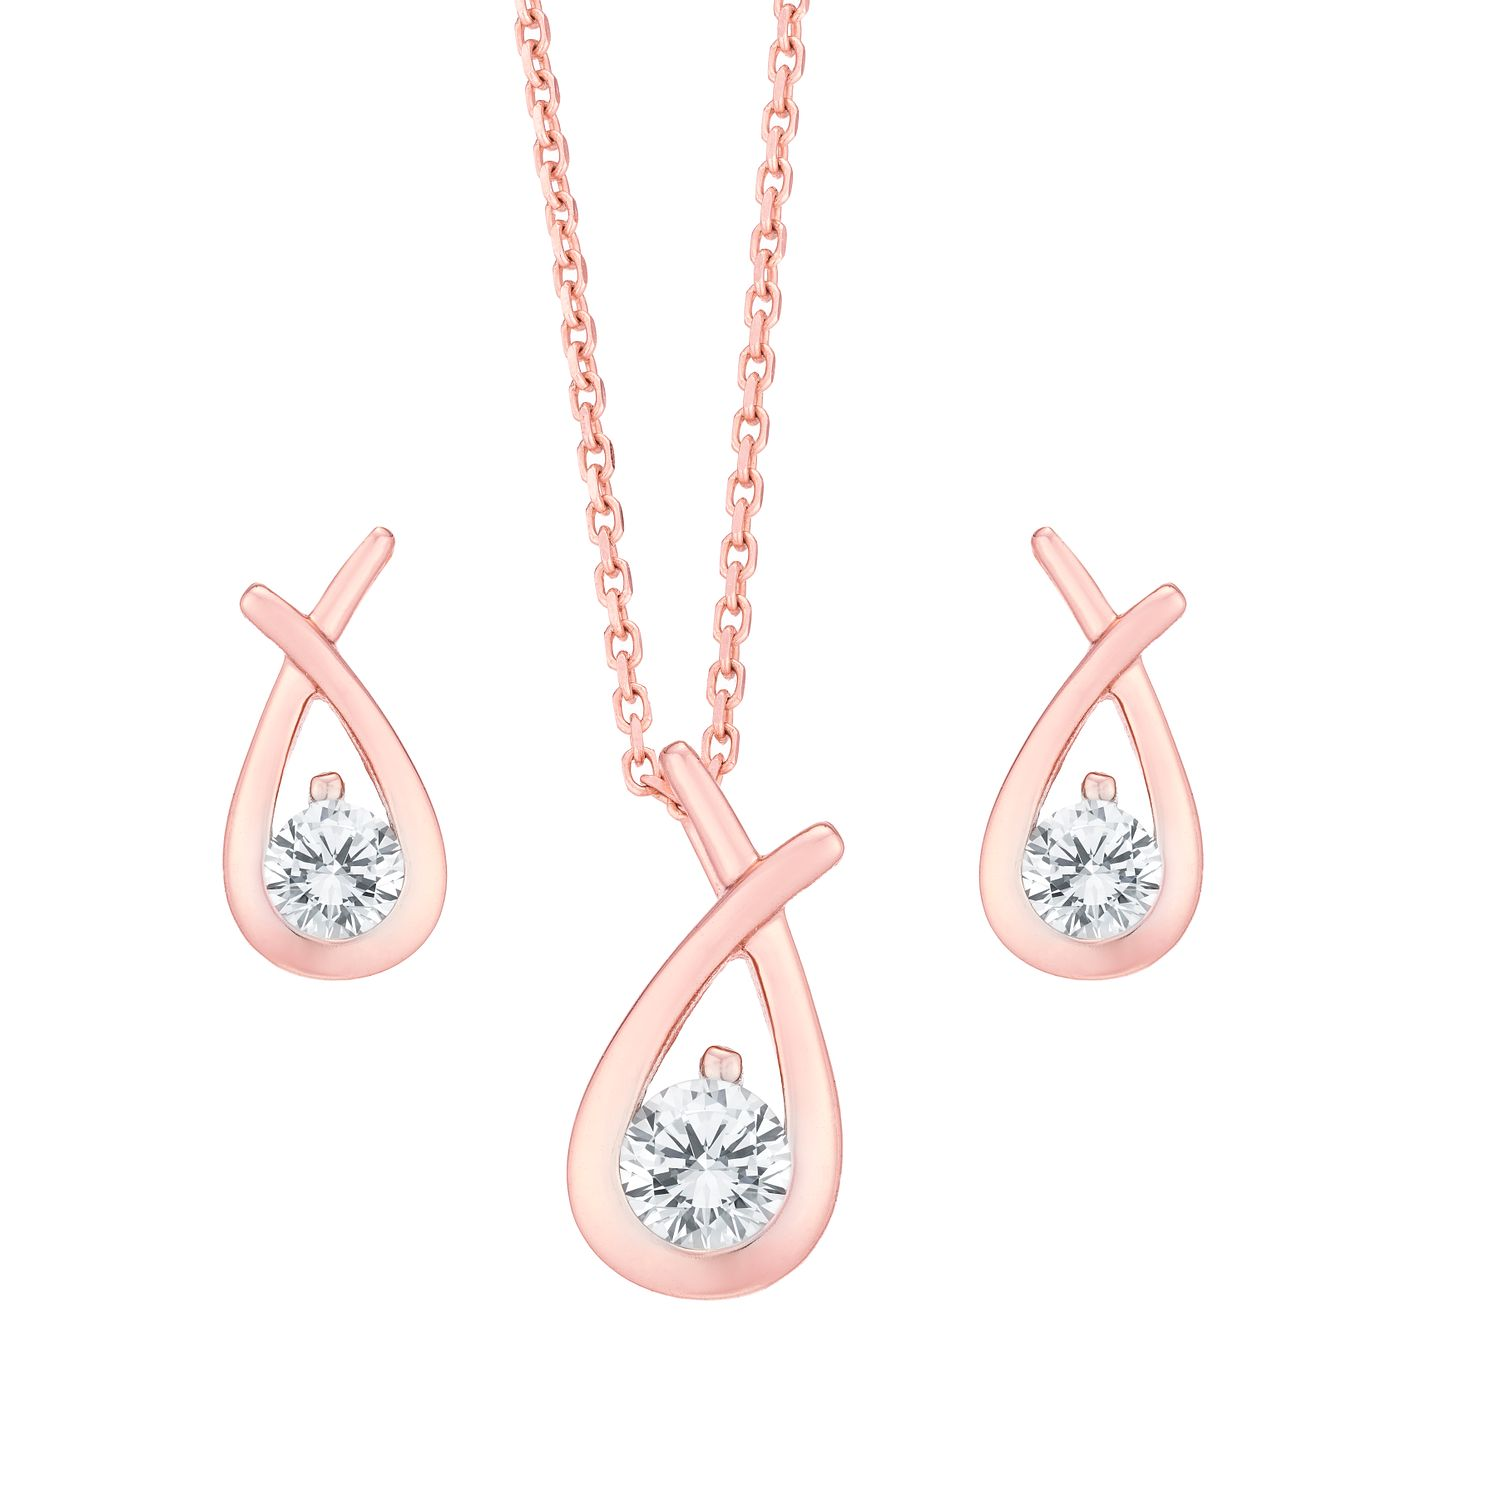 Rose Gold Plated Cubic Zirconia Earring & Necklace Gift Set - Product number 6147488